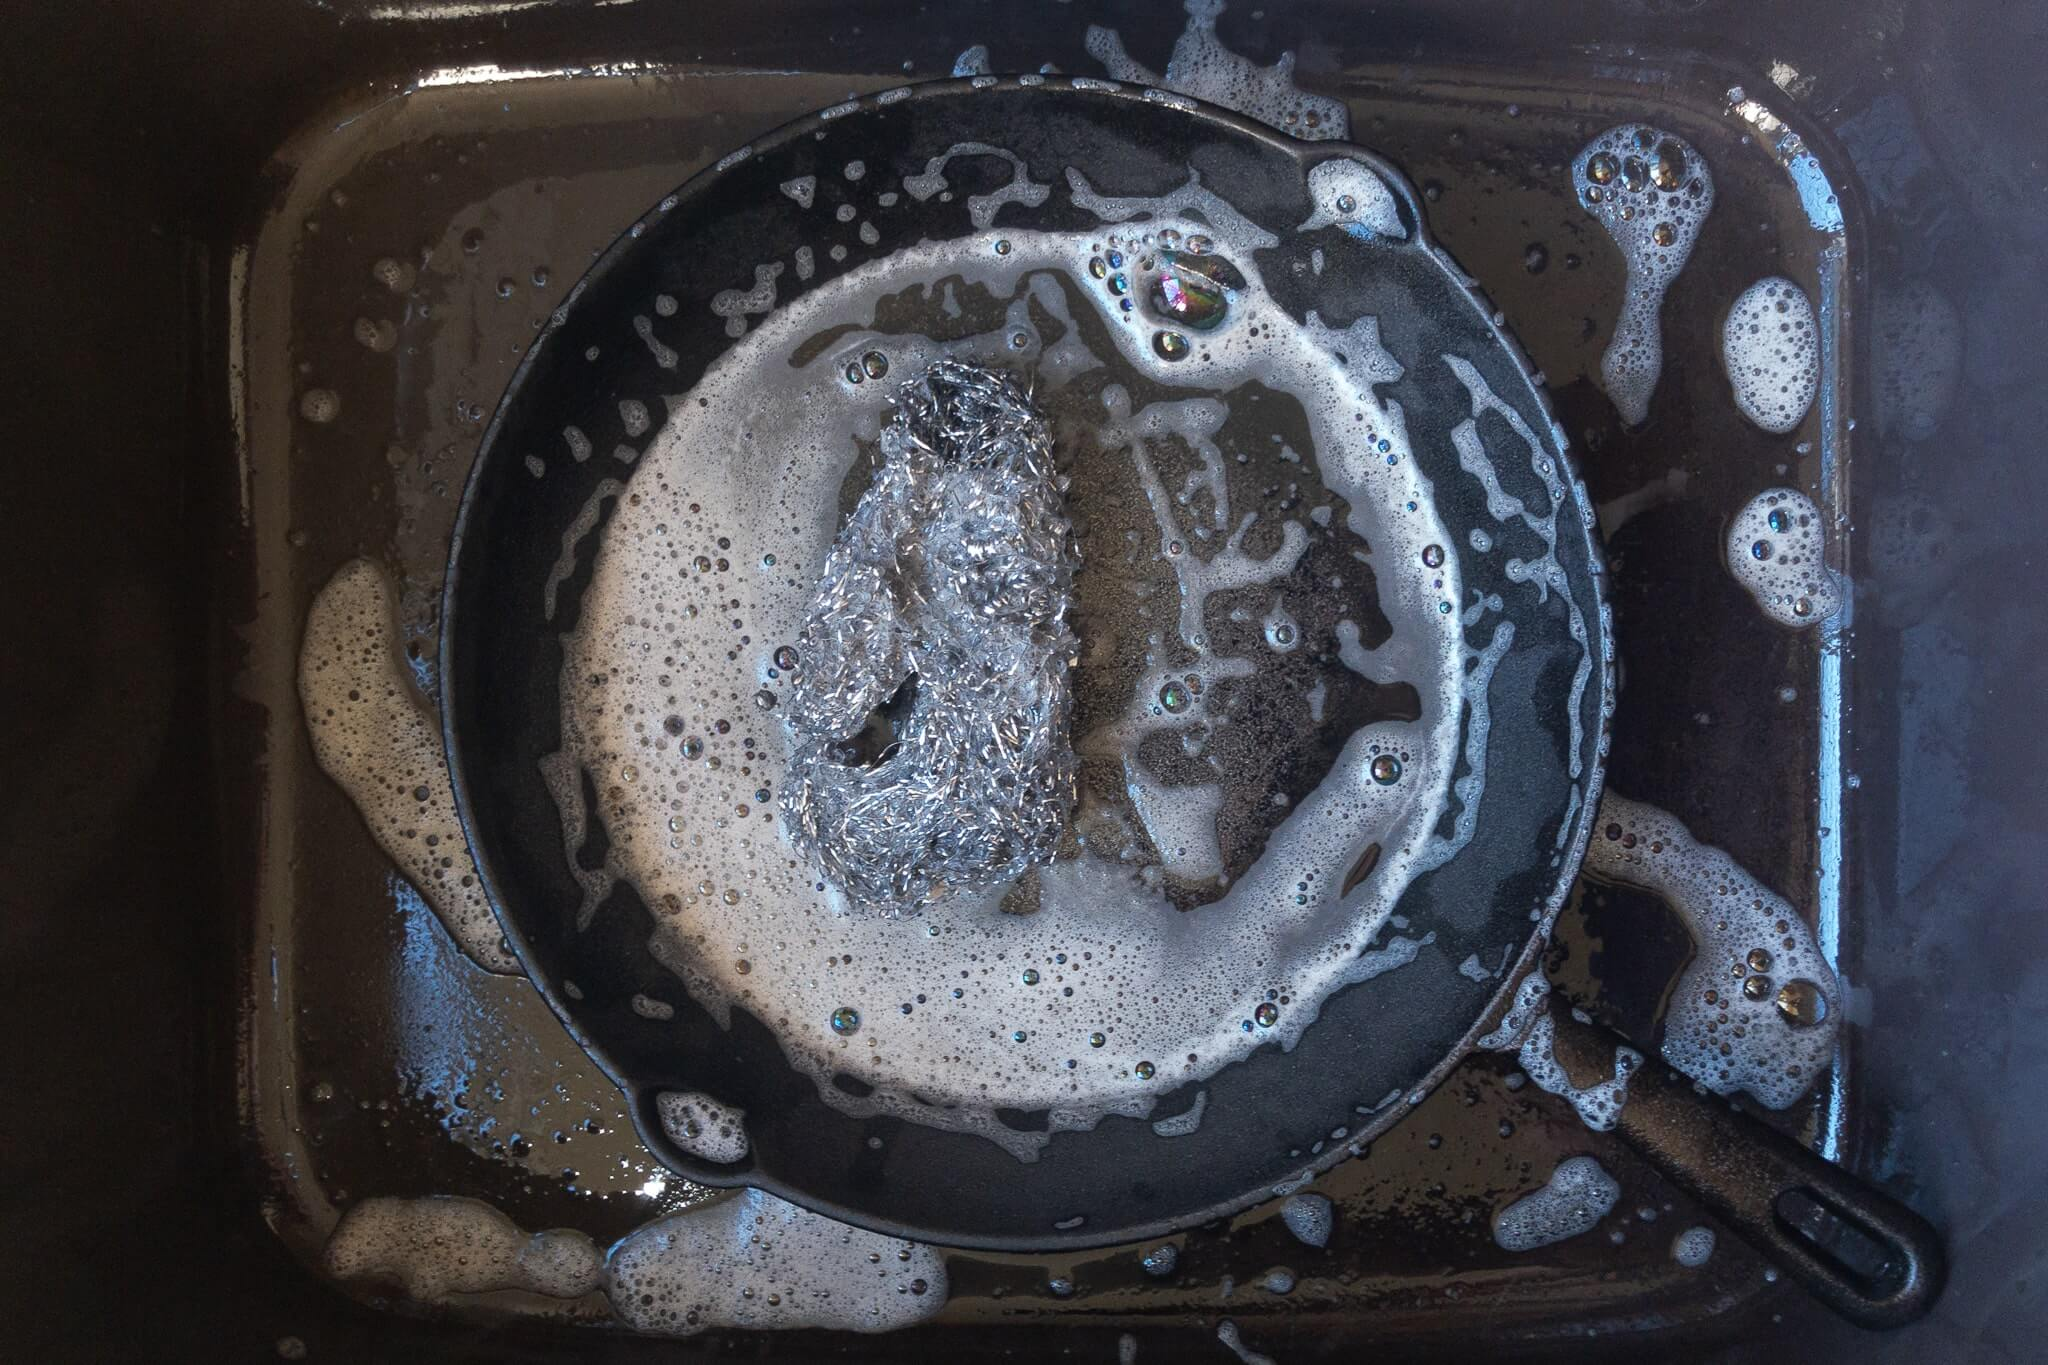 A scrubbed cast iron pan